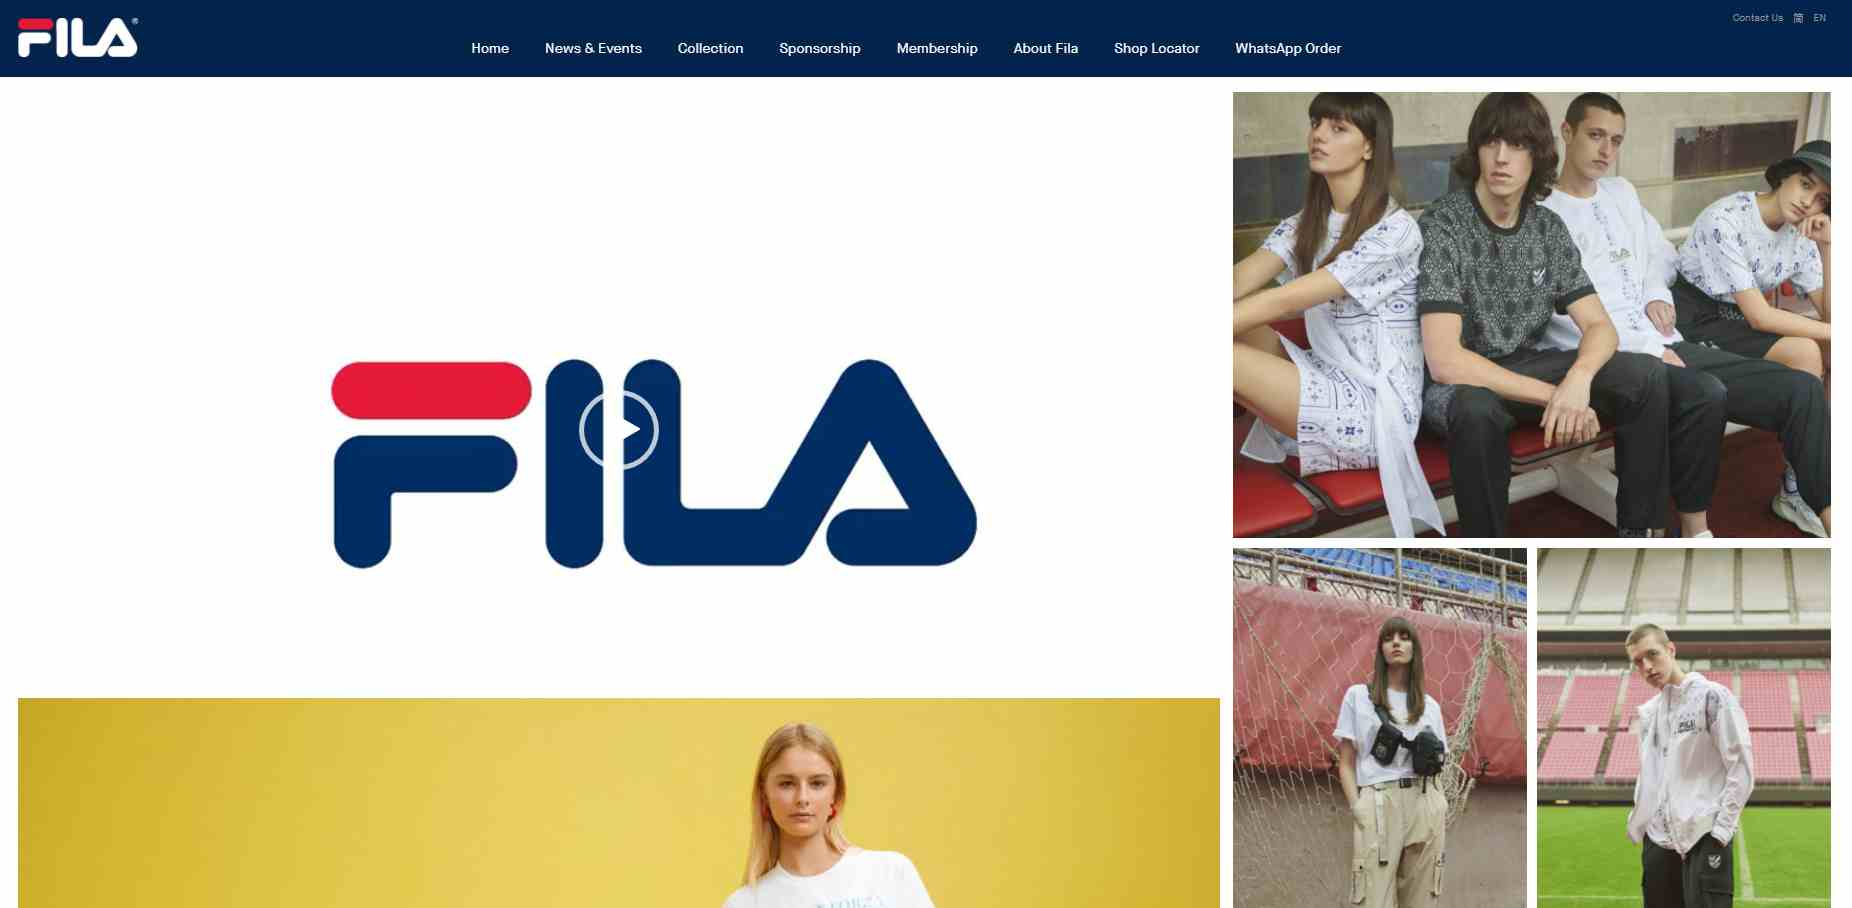 fila Top Shoe Stores in Singapore